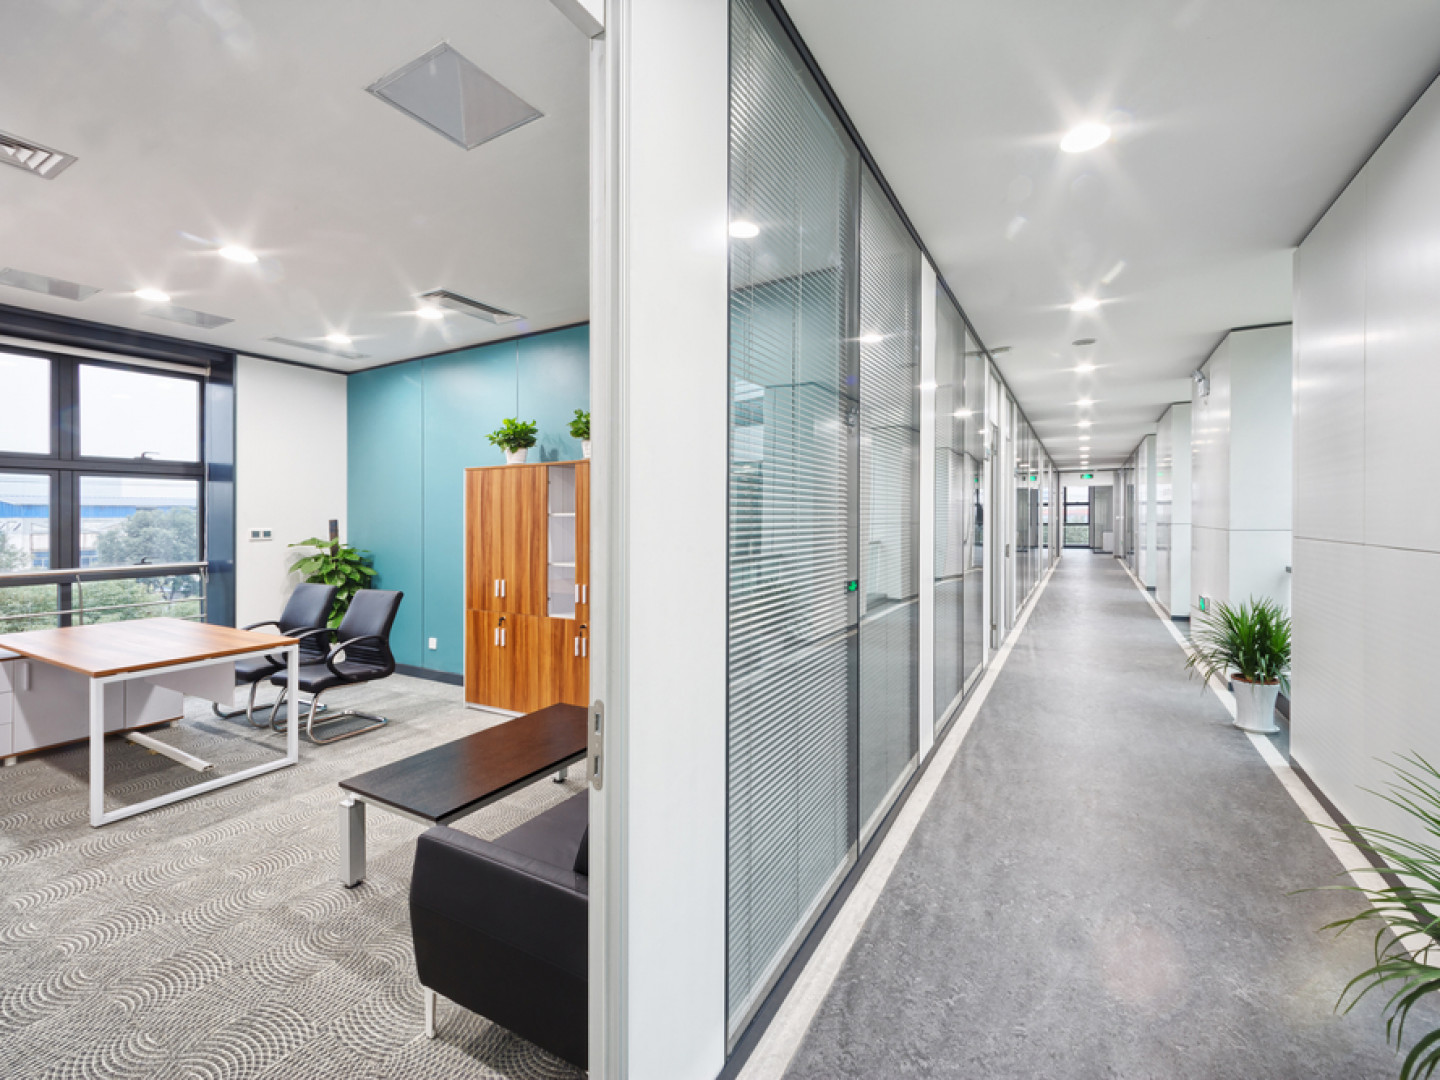 In the beginning, our cleaning experts like to focus on surfaces with a high touch volume on a daily basis in common areas of the office, such as: